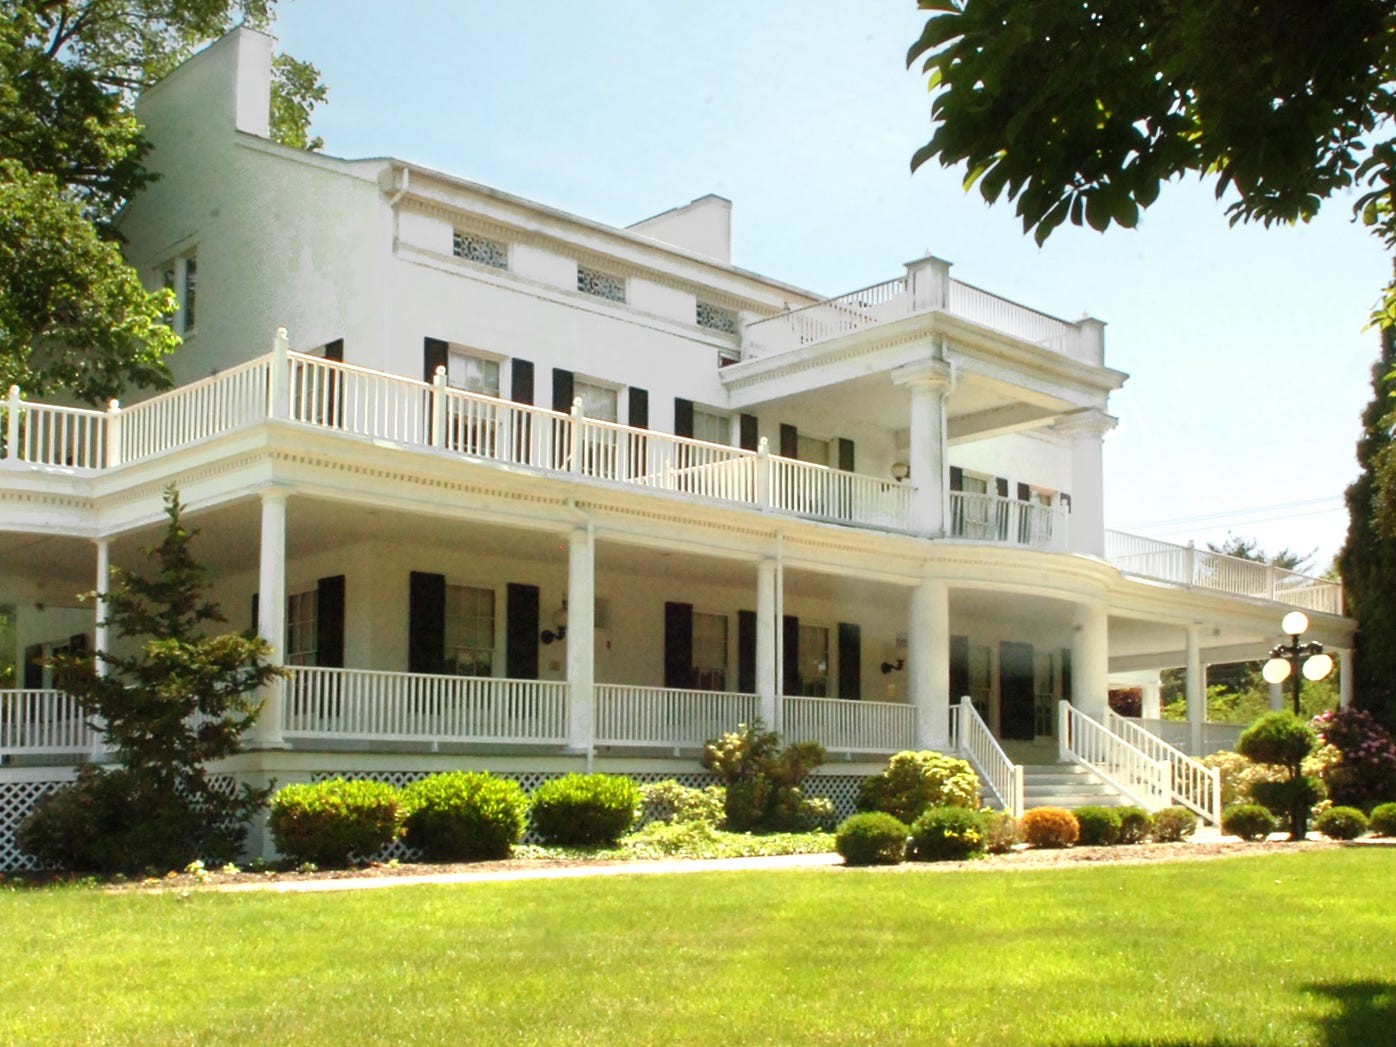 The historic Elmwood Mansion, as shown in a photo from 2007, is up for sale after being used for years as conference space and temporary housing for Memorial Hospital staff.